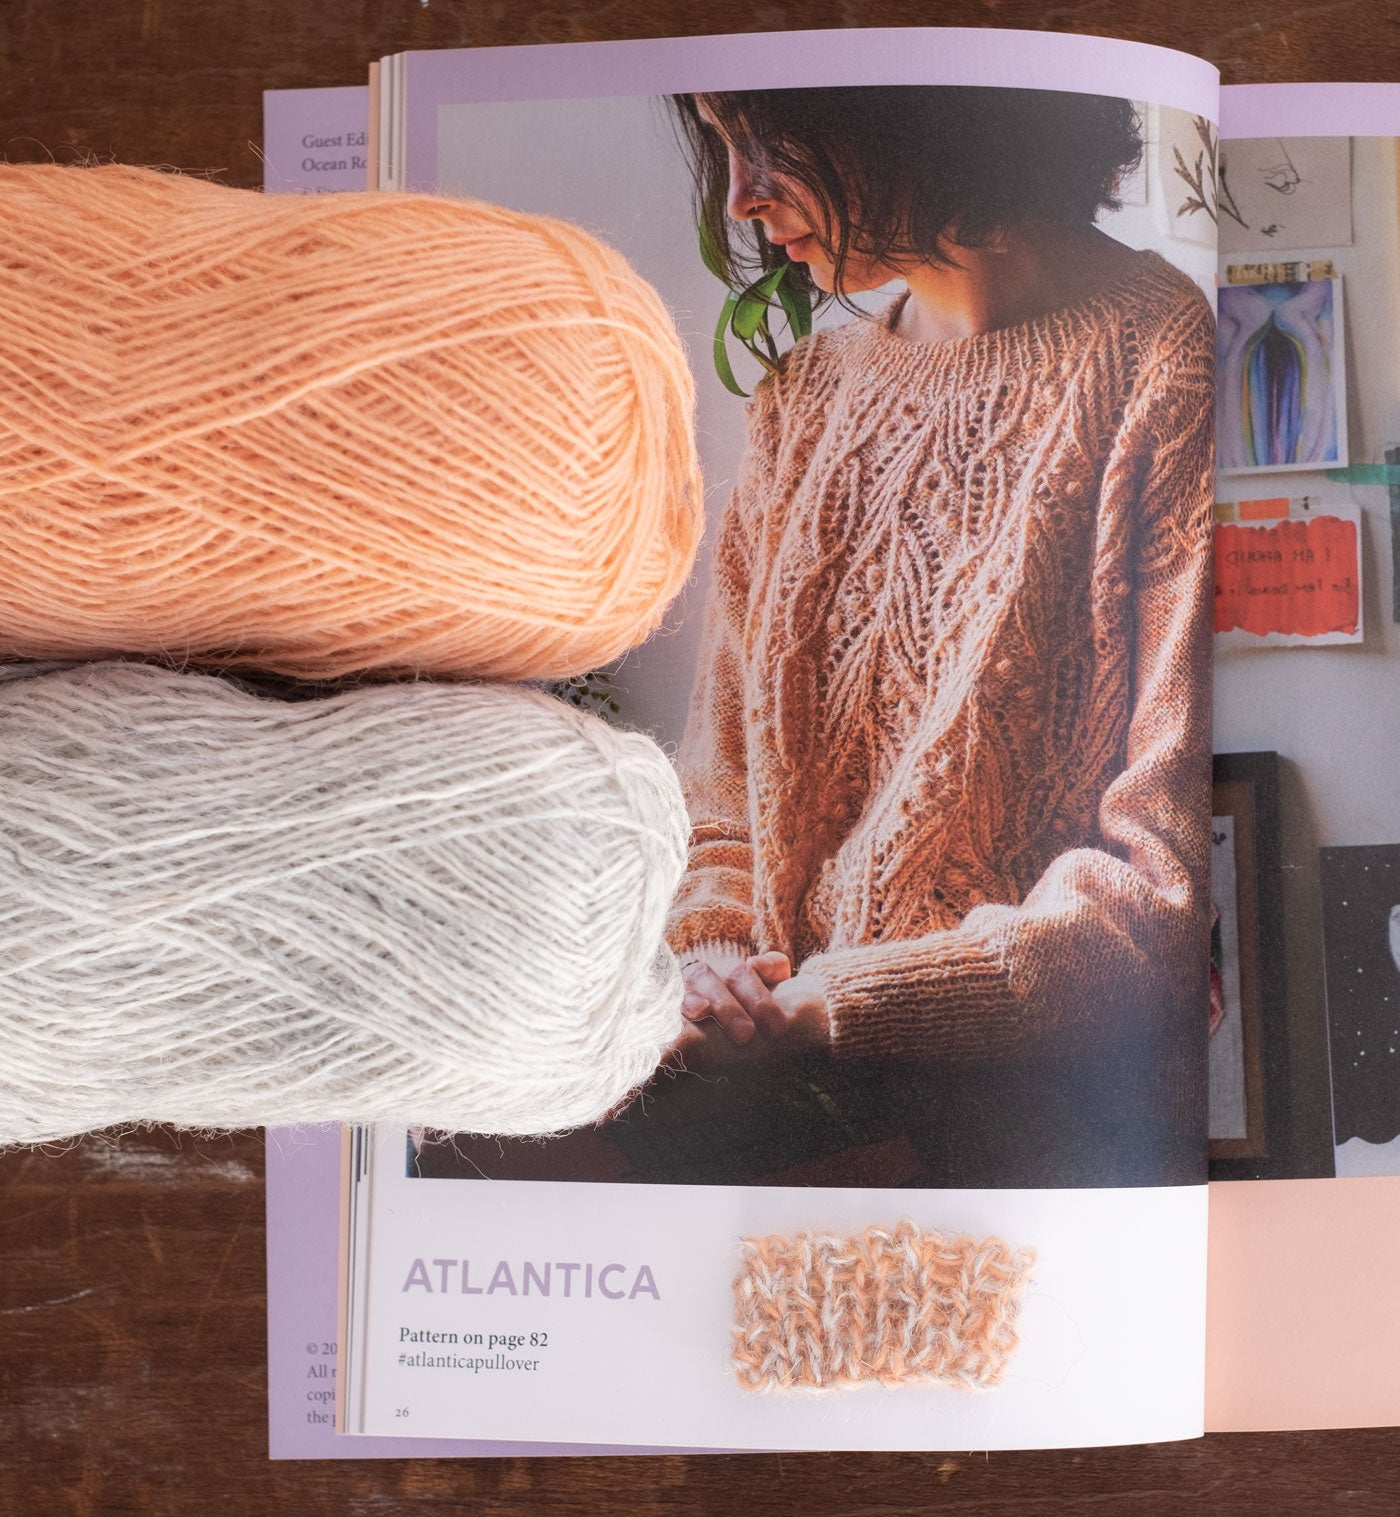 A magazine lays open to a page showing a person with chin-length curly hair wearing the Atlantica Pullover—a delicate lace and cable sweater with a slightly oversized fit. It is a pale, muted peachy color. Two balls of laceweight yarn are on top of the magazine, peeking into the frame of the picture. One is pale heathered grey and one is a warm pale peach. They are held together to created the muted marl fabric.